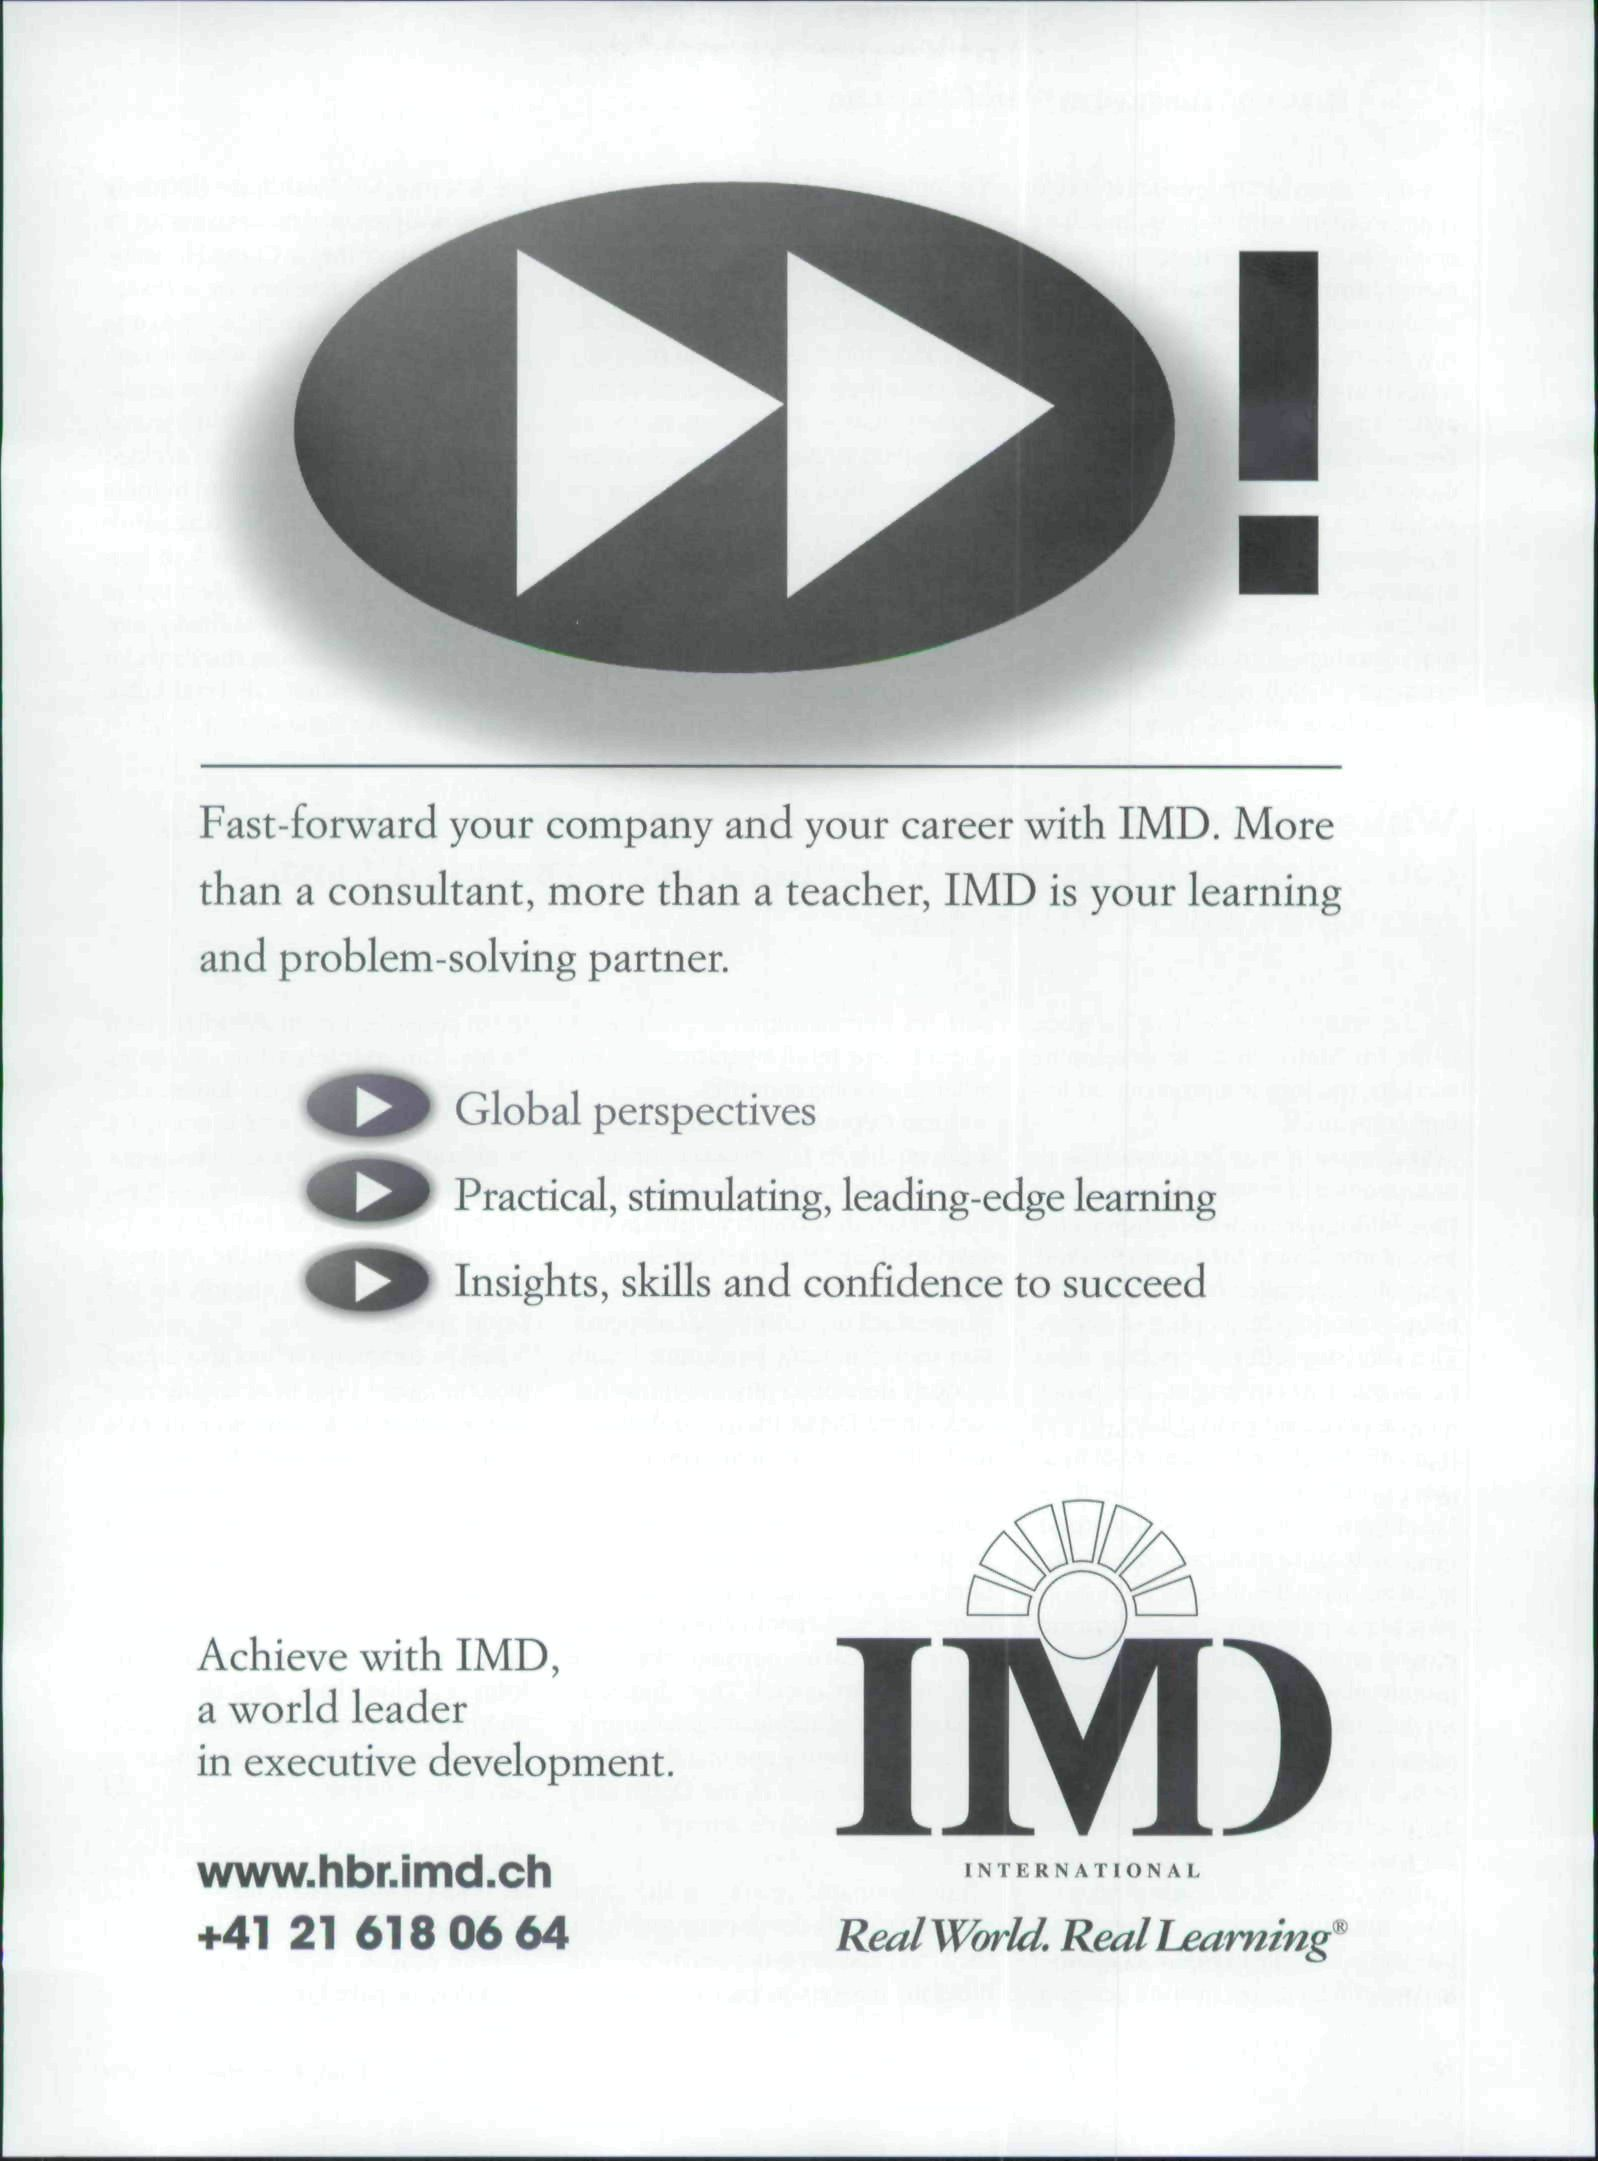 Fast-forward your company and your career with IMD. More than a consultant, more than a teacher, IMD is your learning and problem-solving partner.